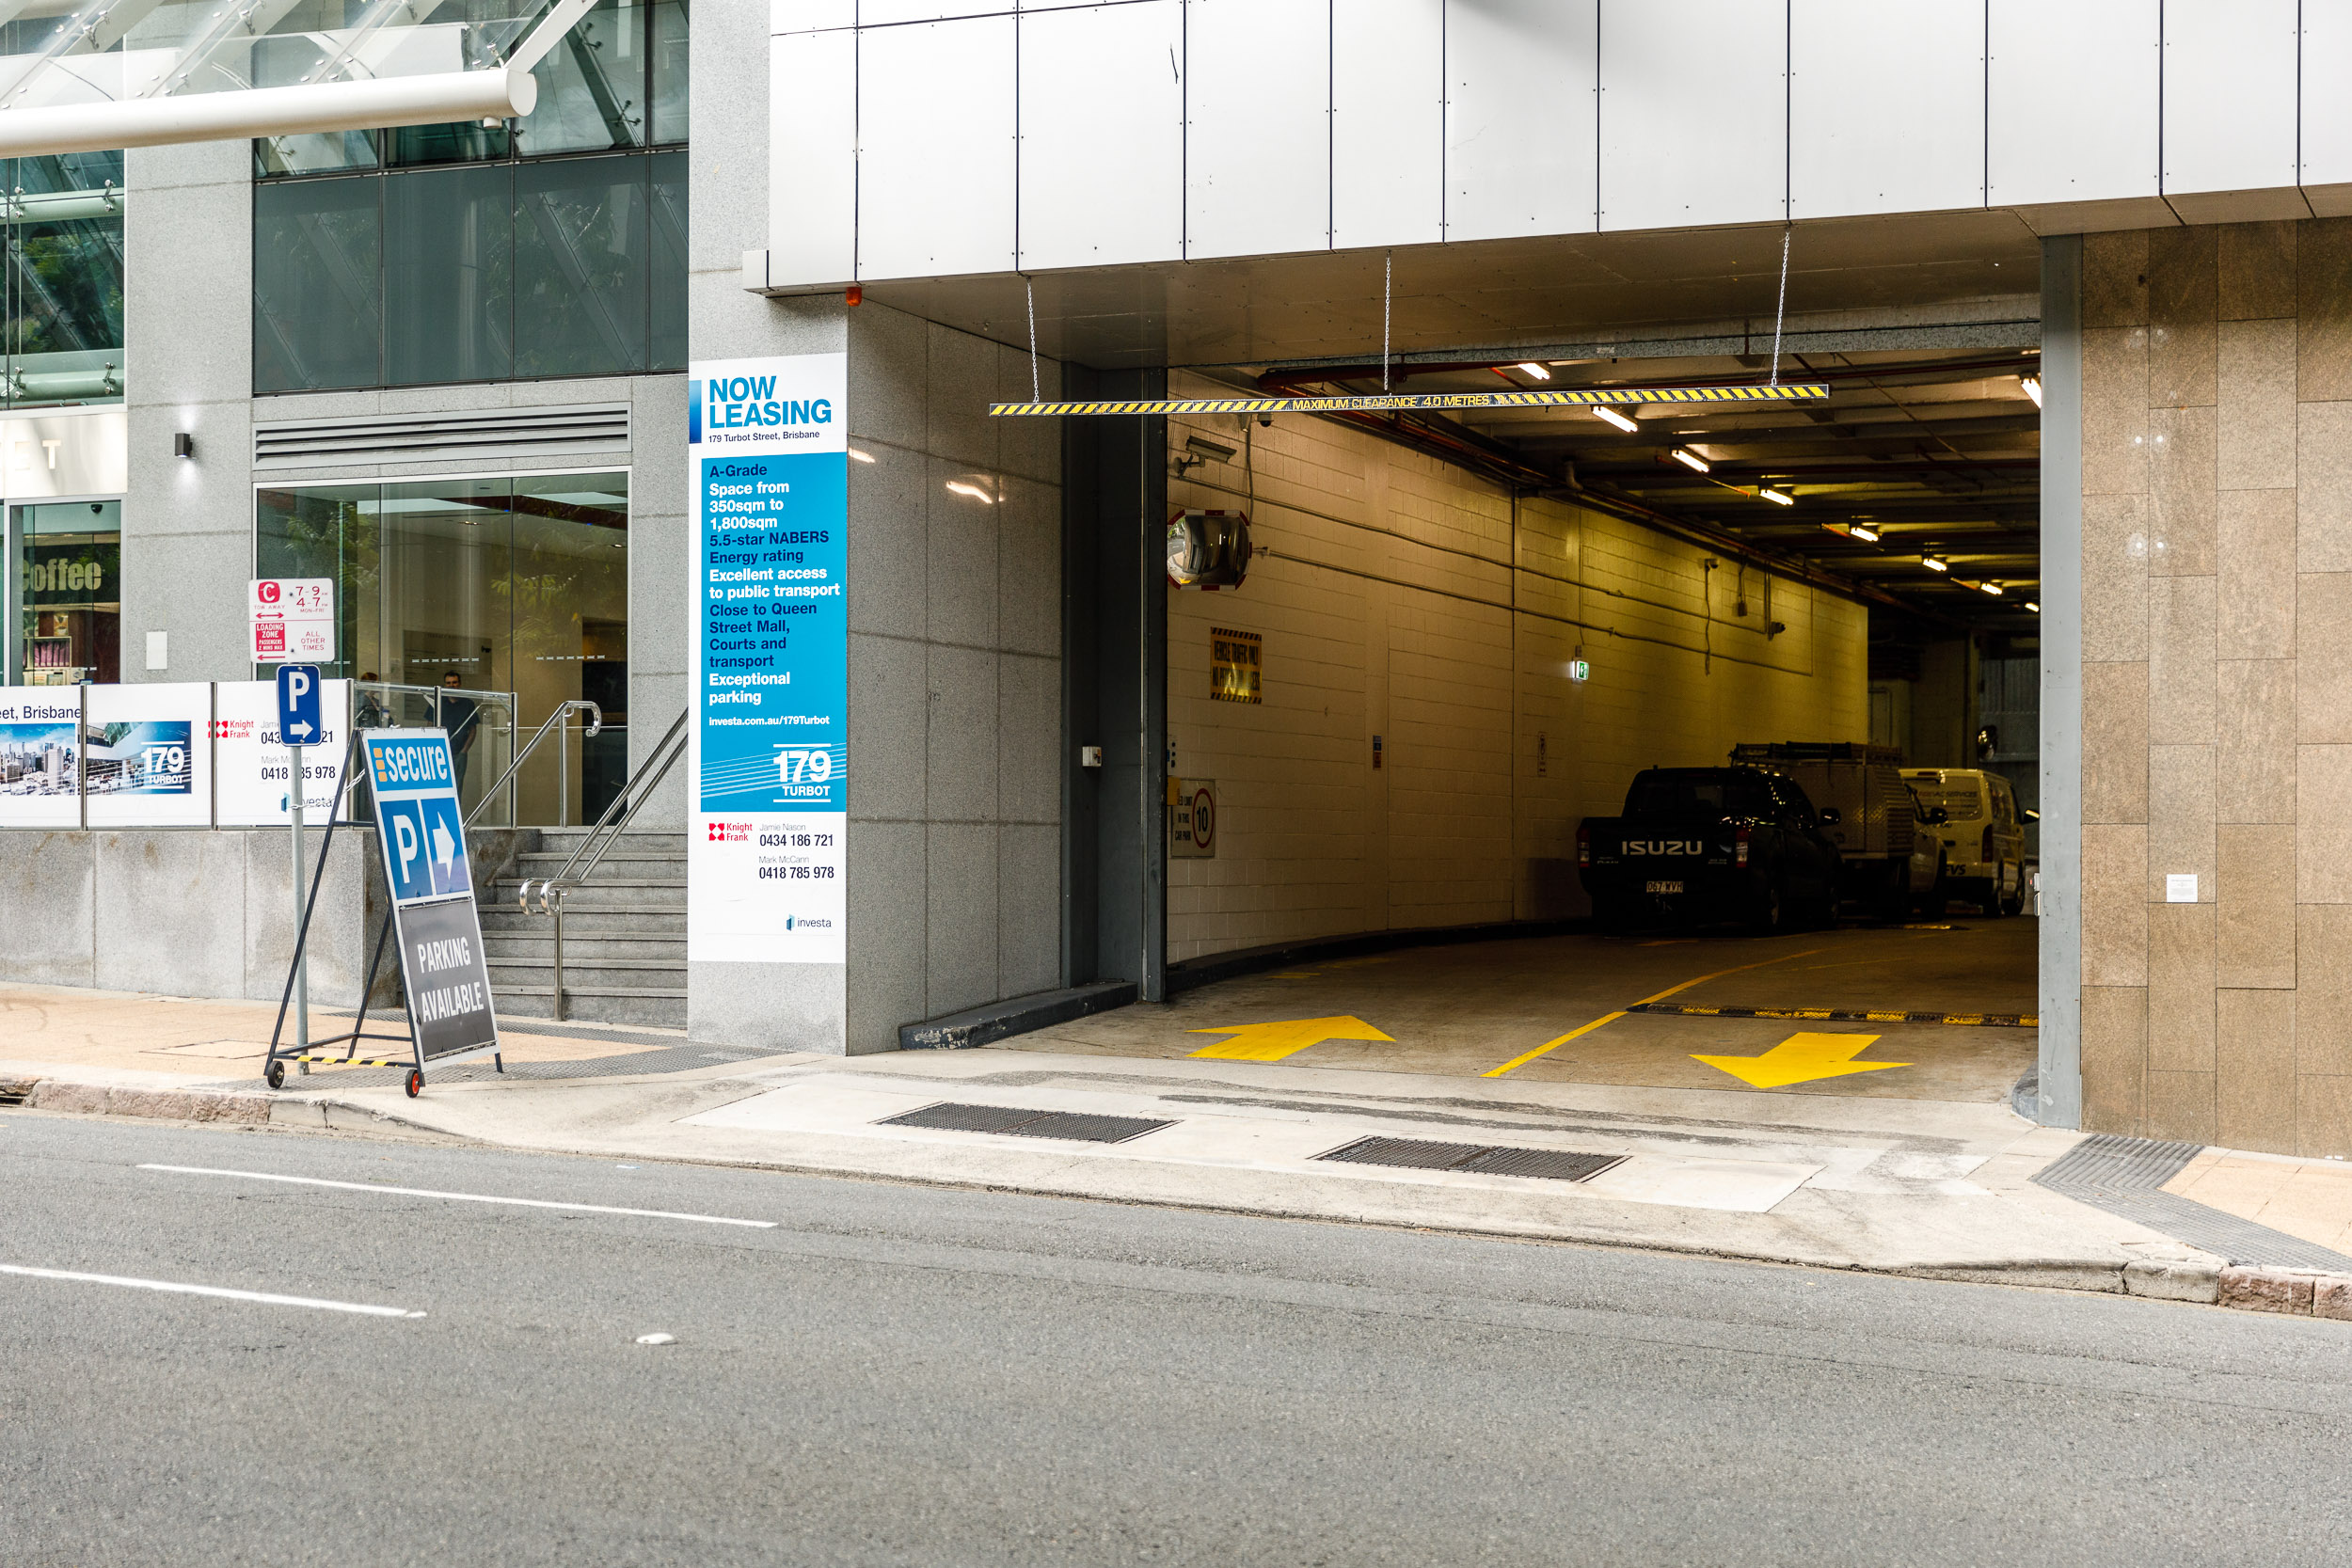 Secure Parking (Paid Car Parking) located at 179 Turbot Street. The most expensive but right next door. Enter from the far right hand lane of Turbot Street before the registry. Photo by Chris Jack.